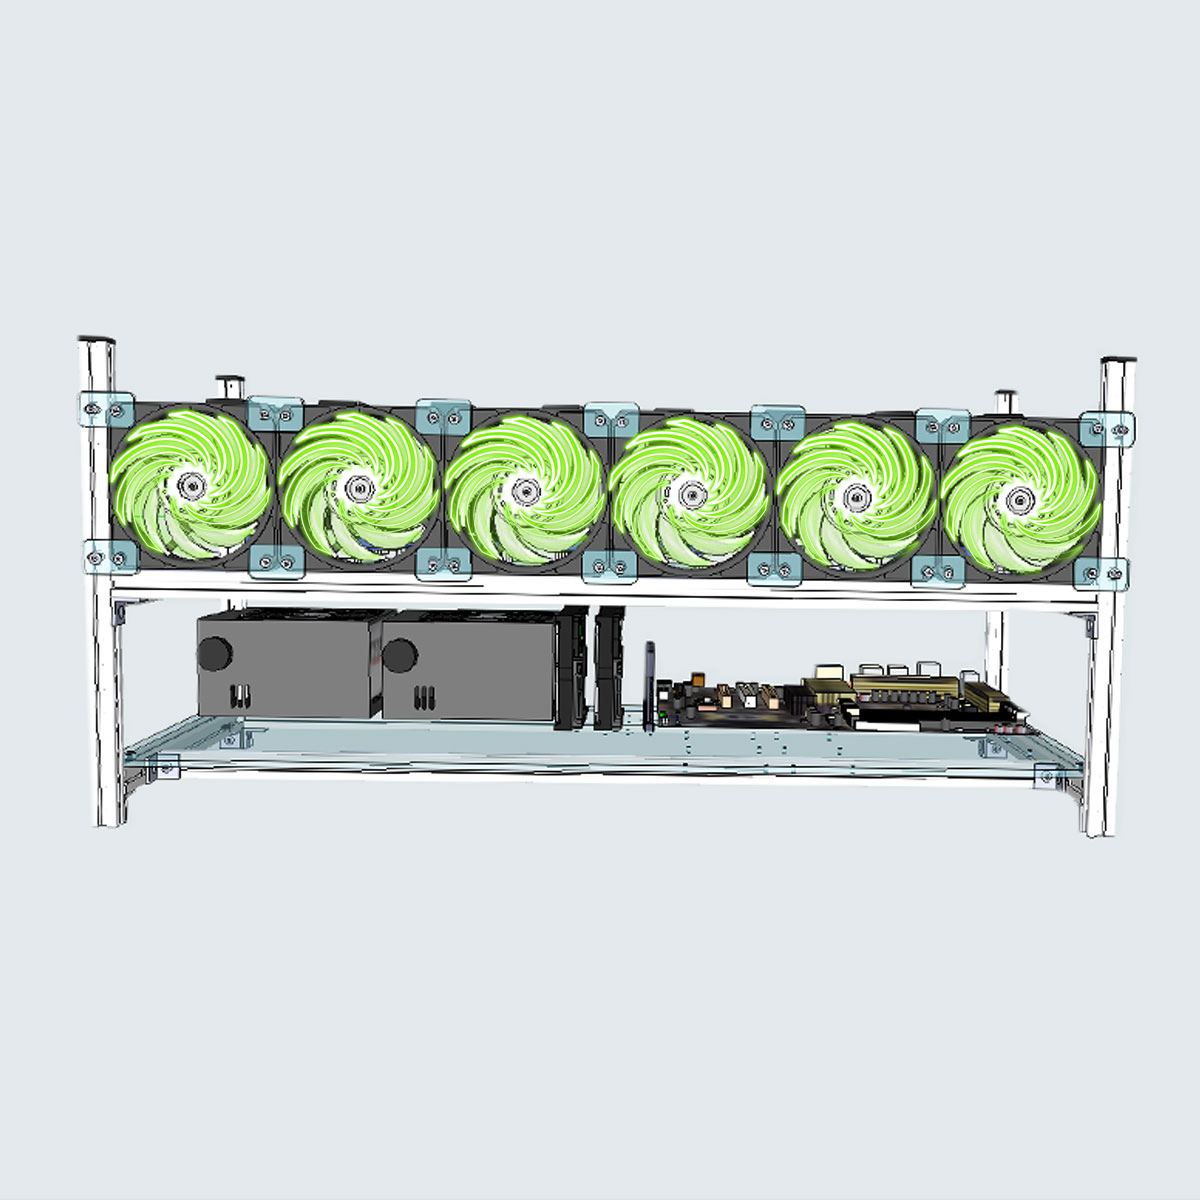 Aluminum Open Air Mining Rig Stackable Frame Case With Green LED 6 Fans For 8 GPU ETH BTC